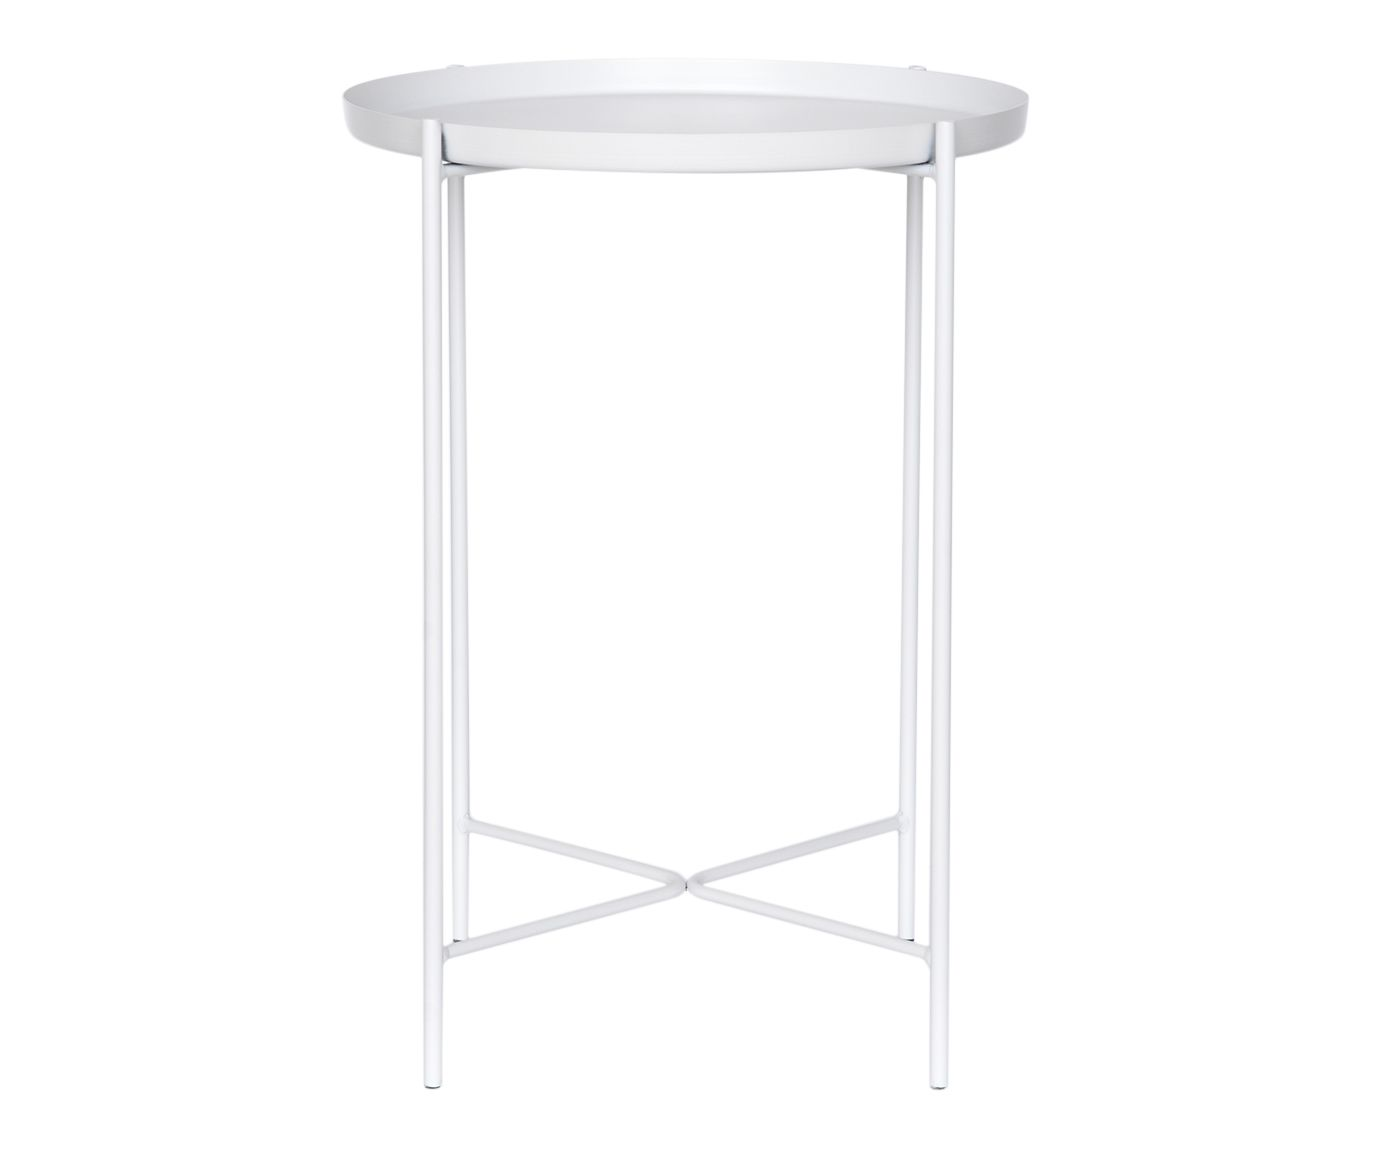 Mesa Lateral Chelly Branca - 56X42cm | Westwing.com.br